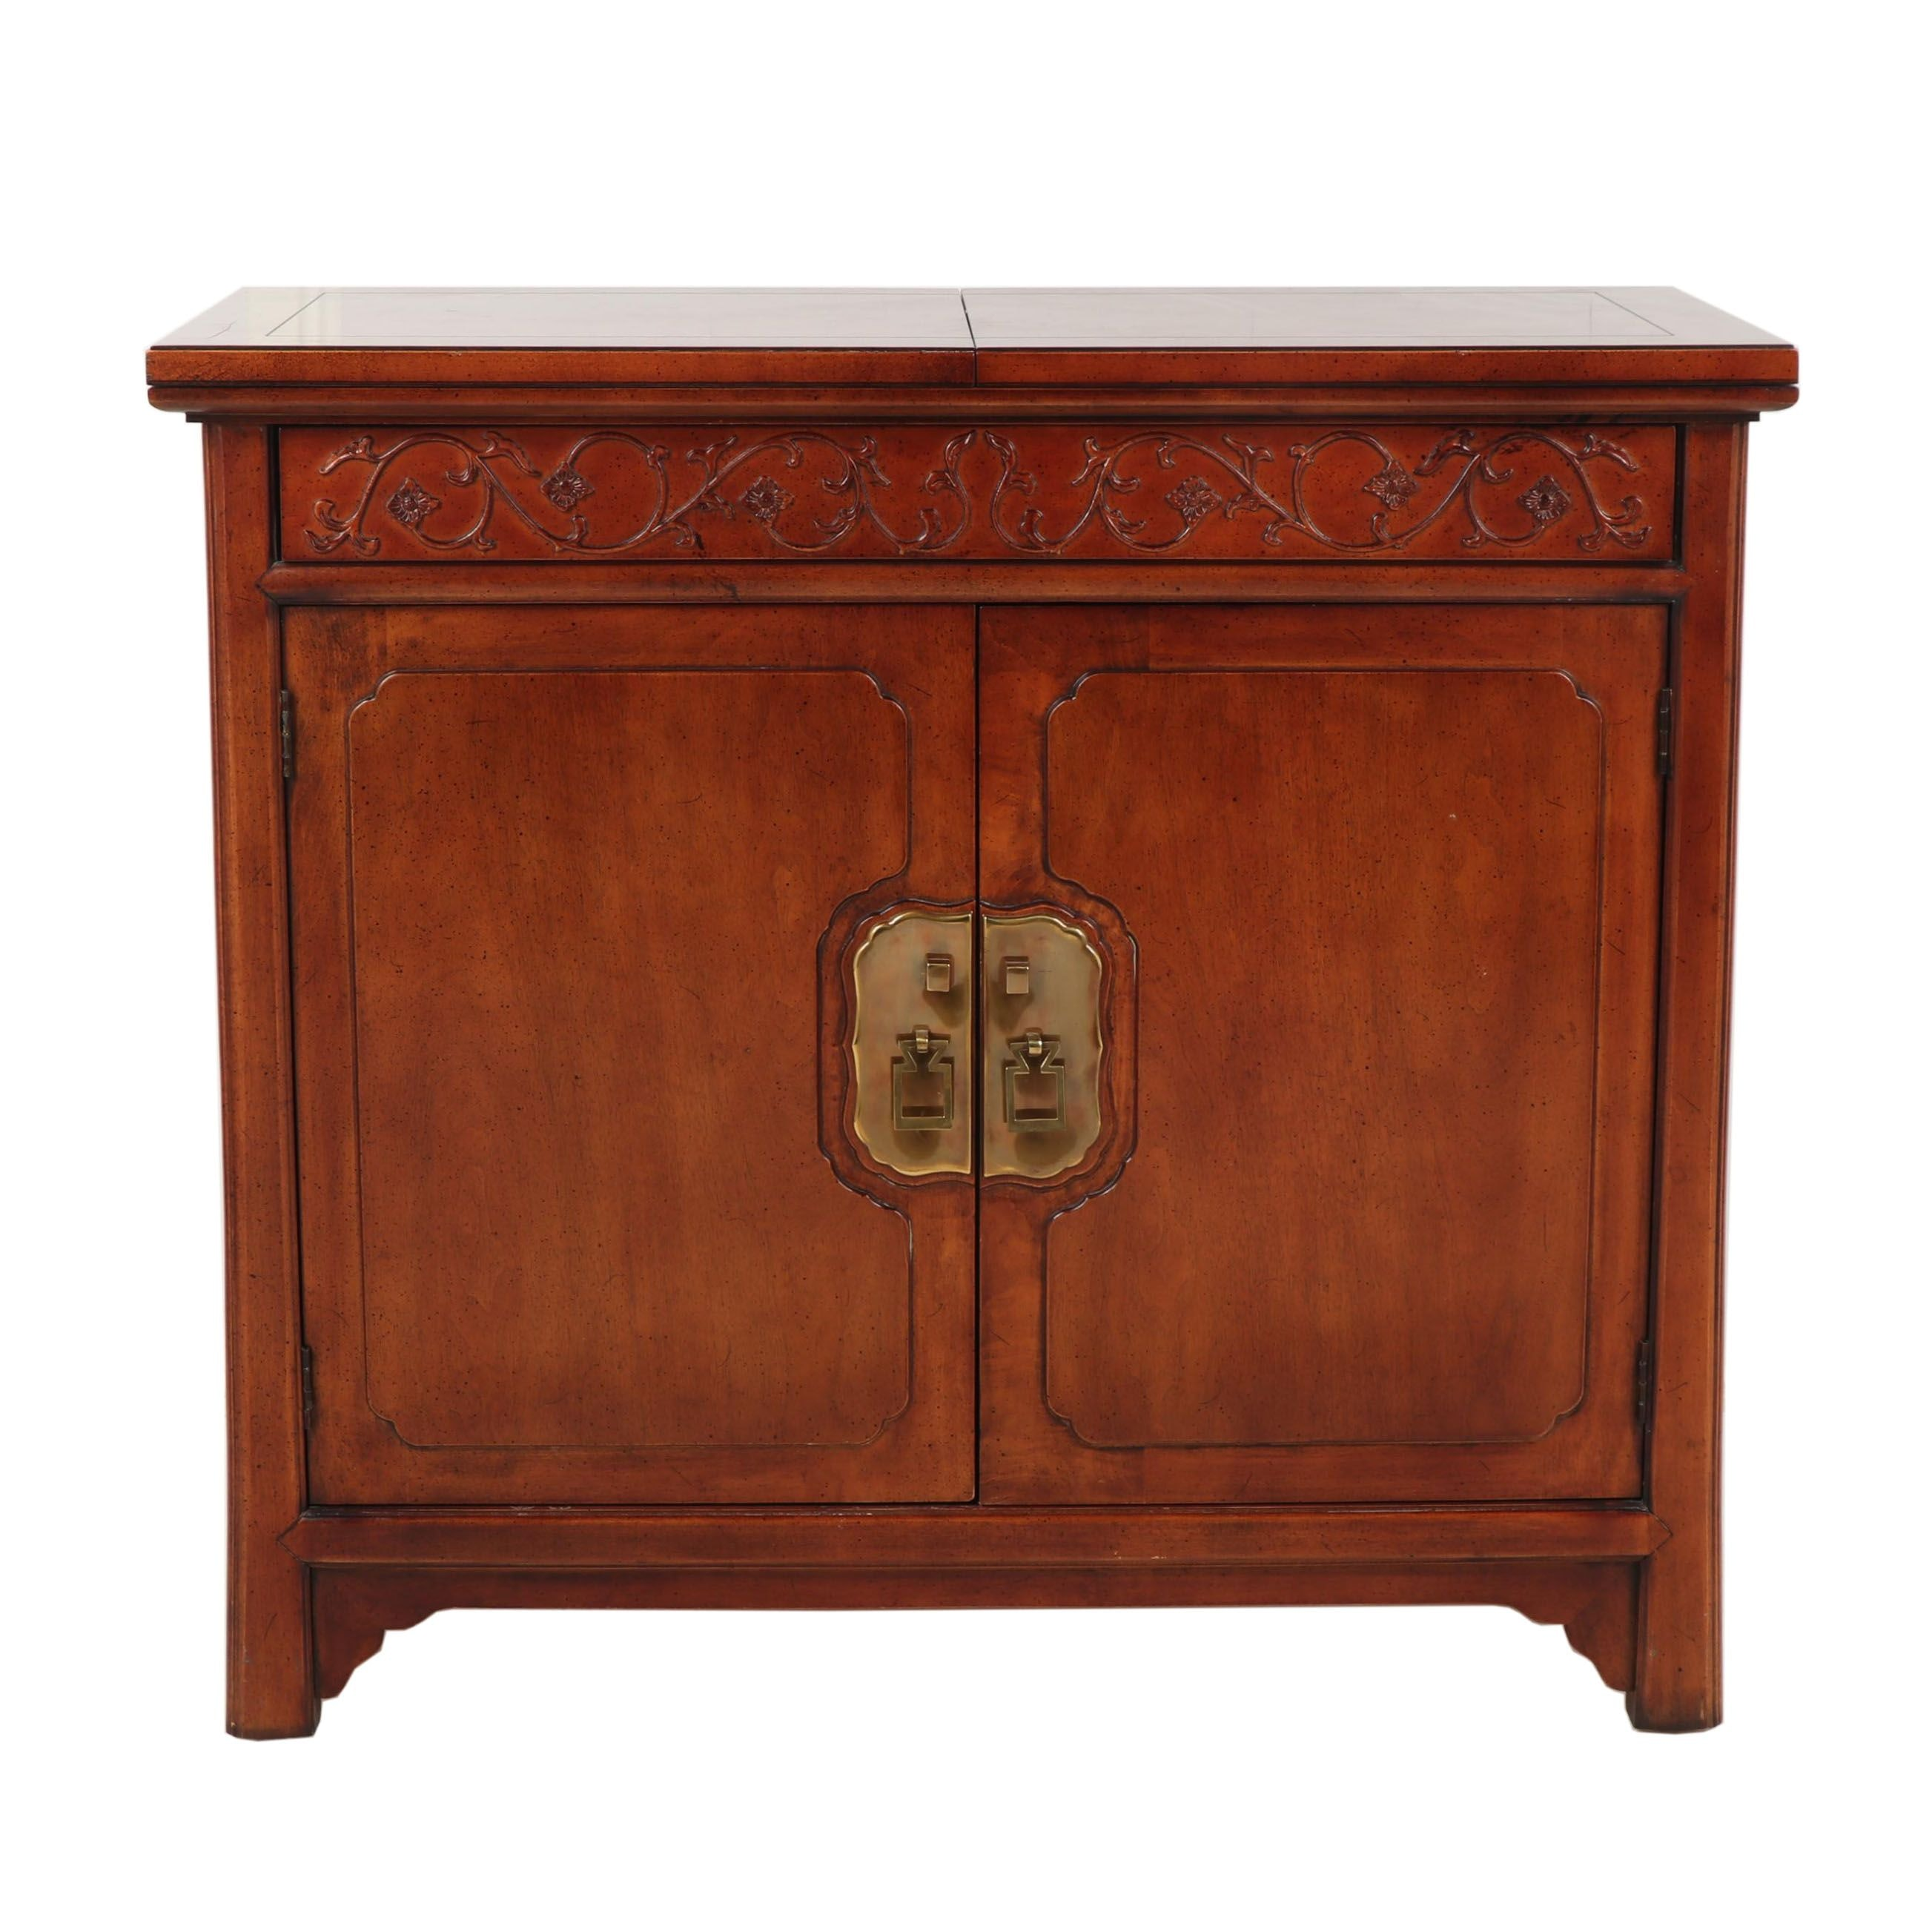 Chinese Inspired Henredon Server with Fold Out Top, Contemporary